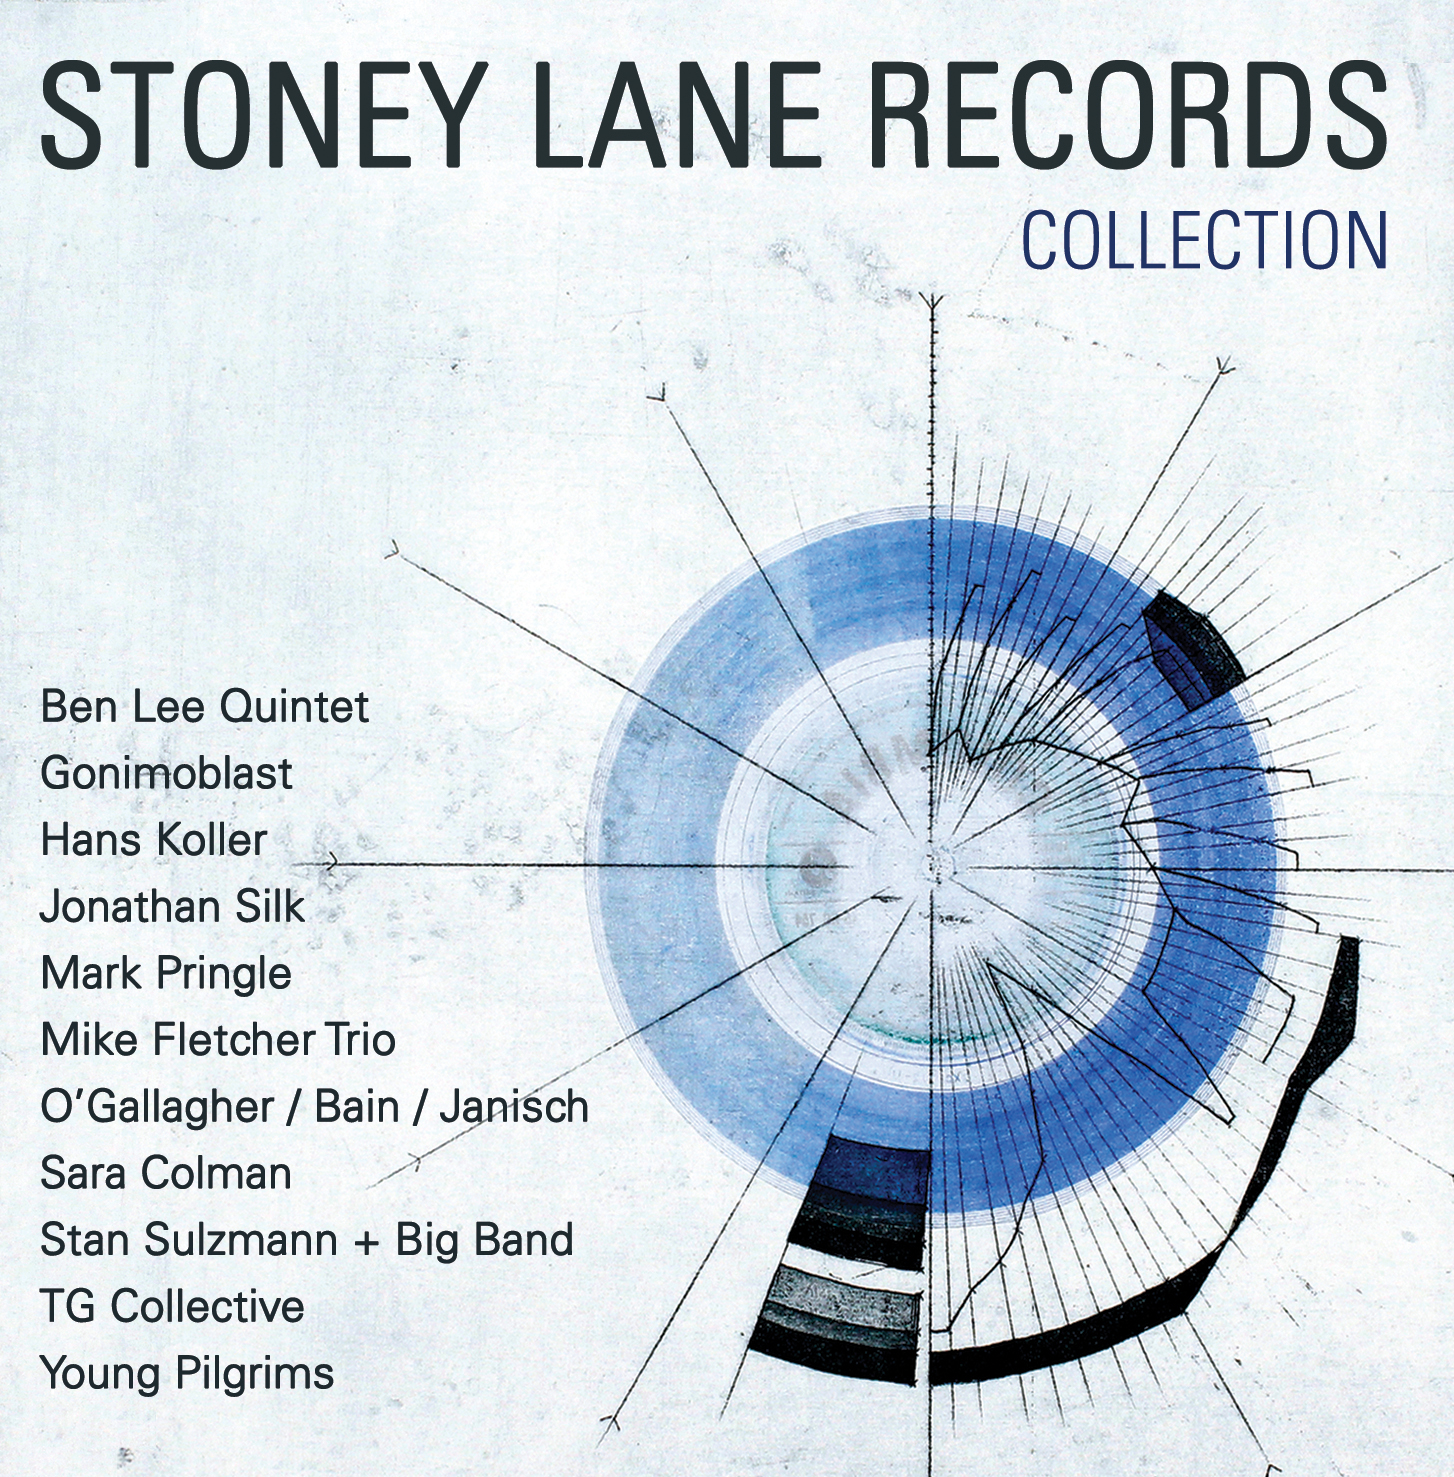 Stoney Lane Records Collection